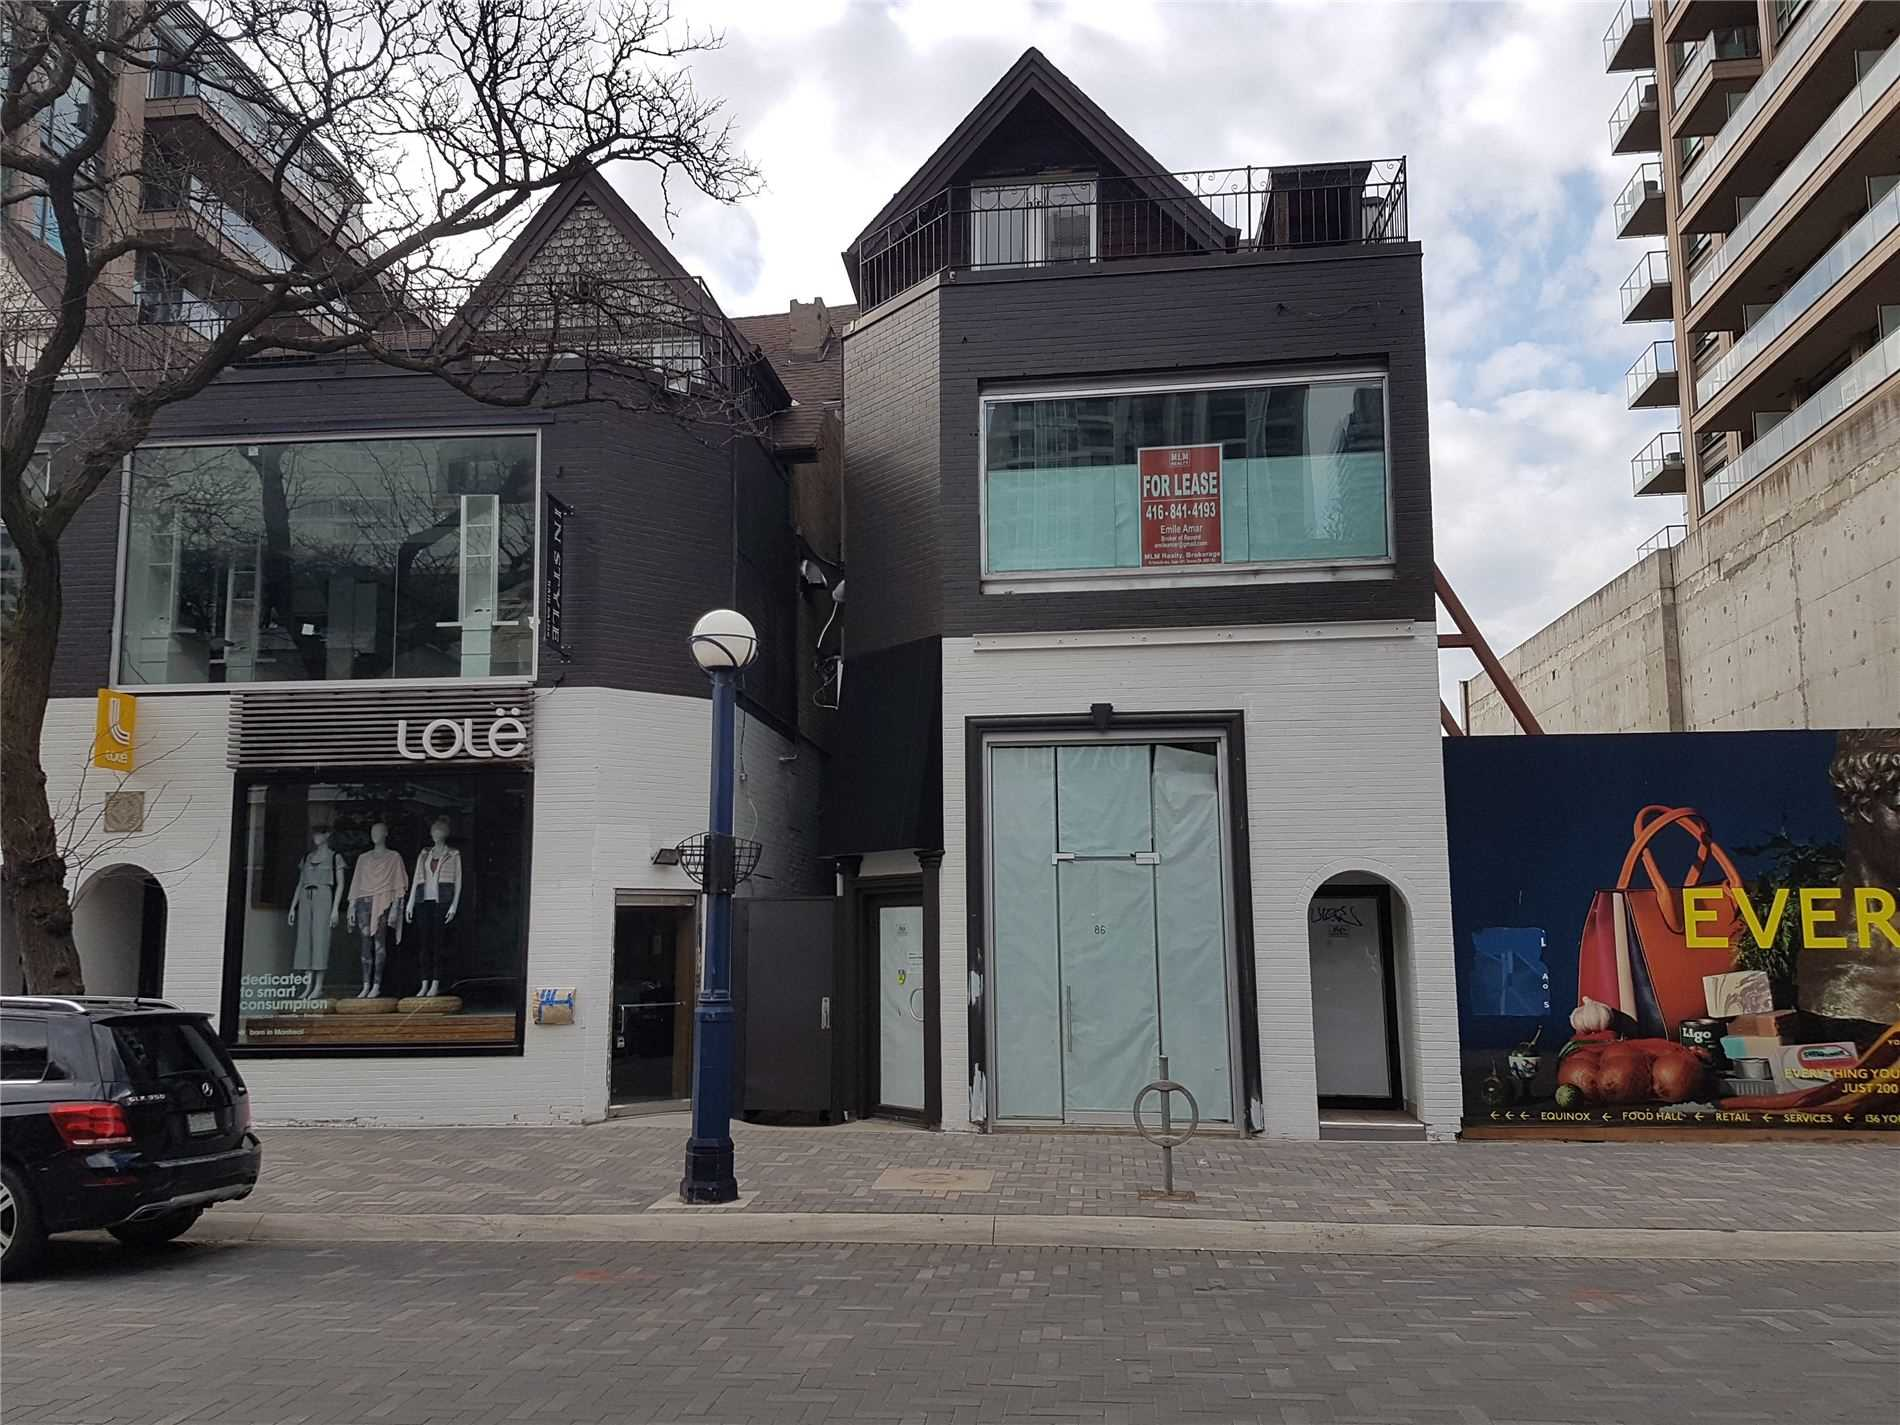 Commercial/retail For Lease In Toronto , ,Commercial/retail,For Lease,3rd Fl,Yorkville